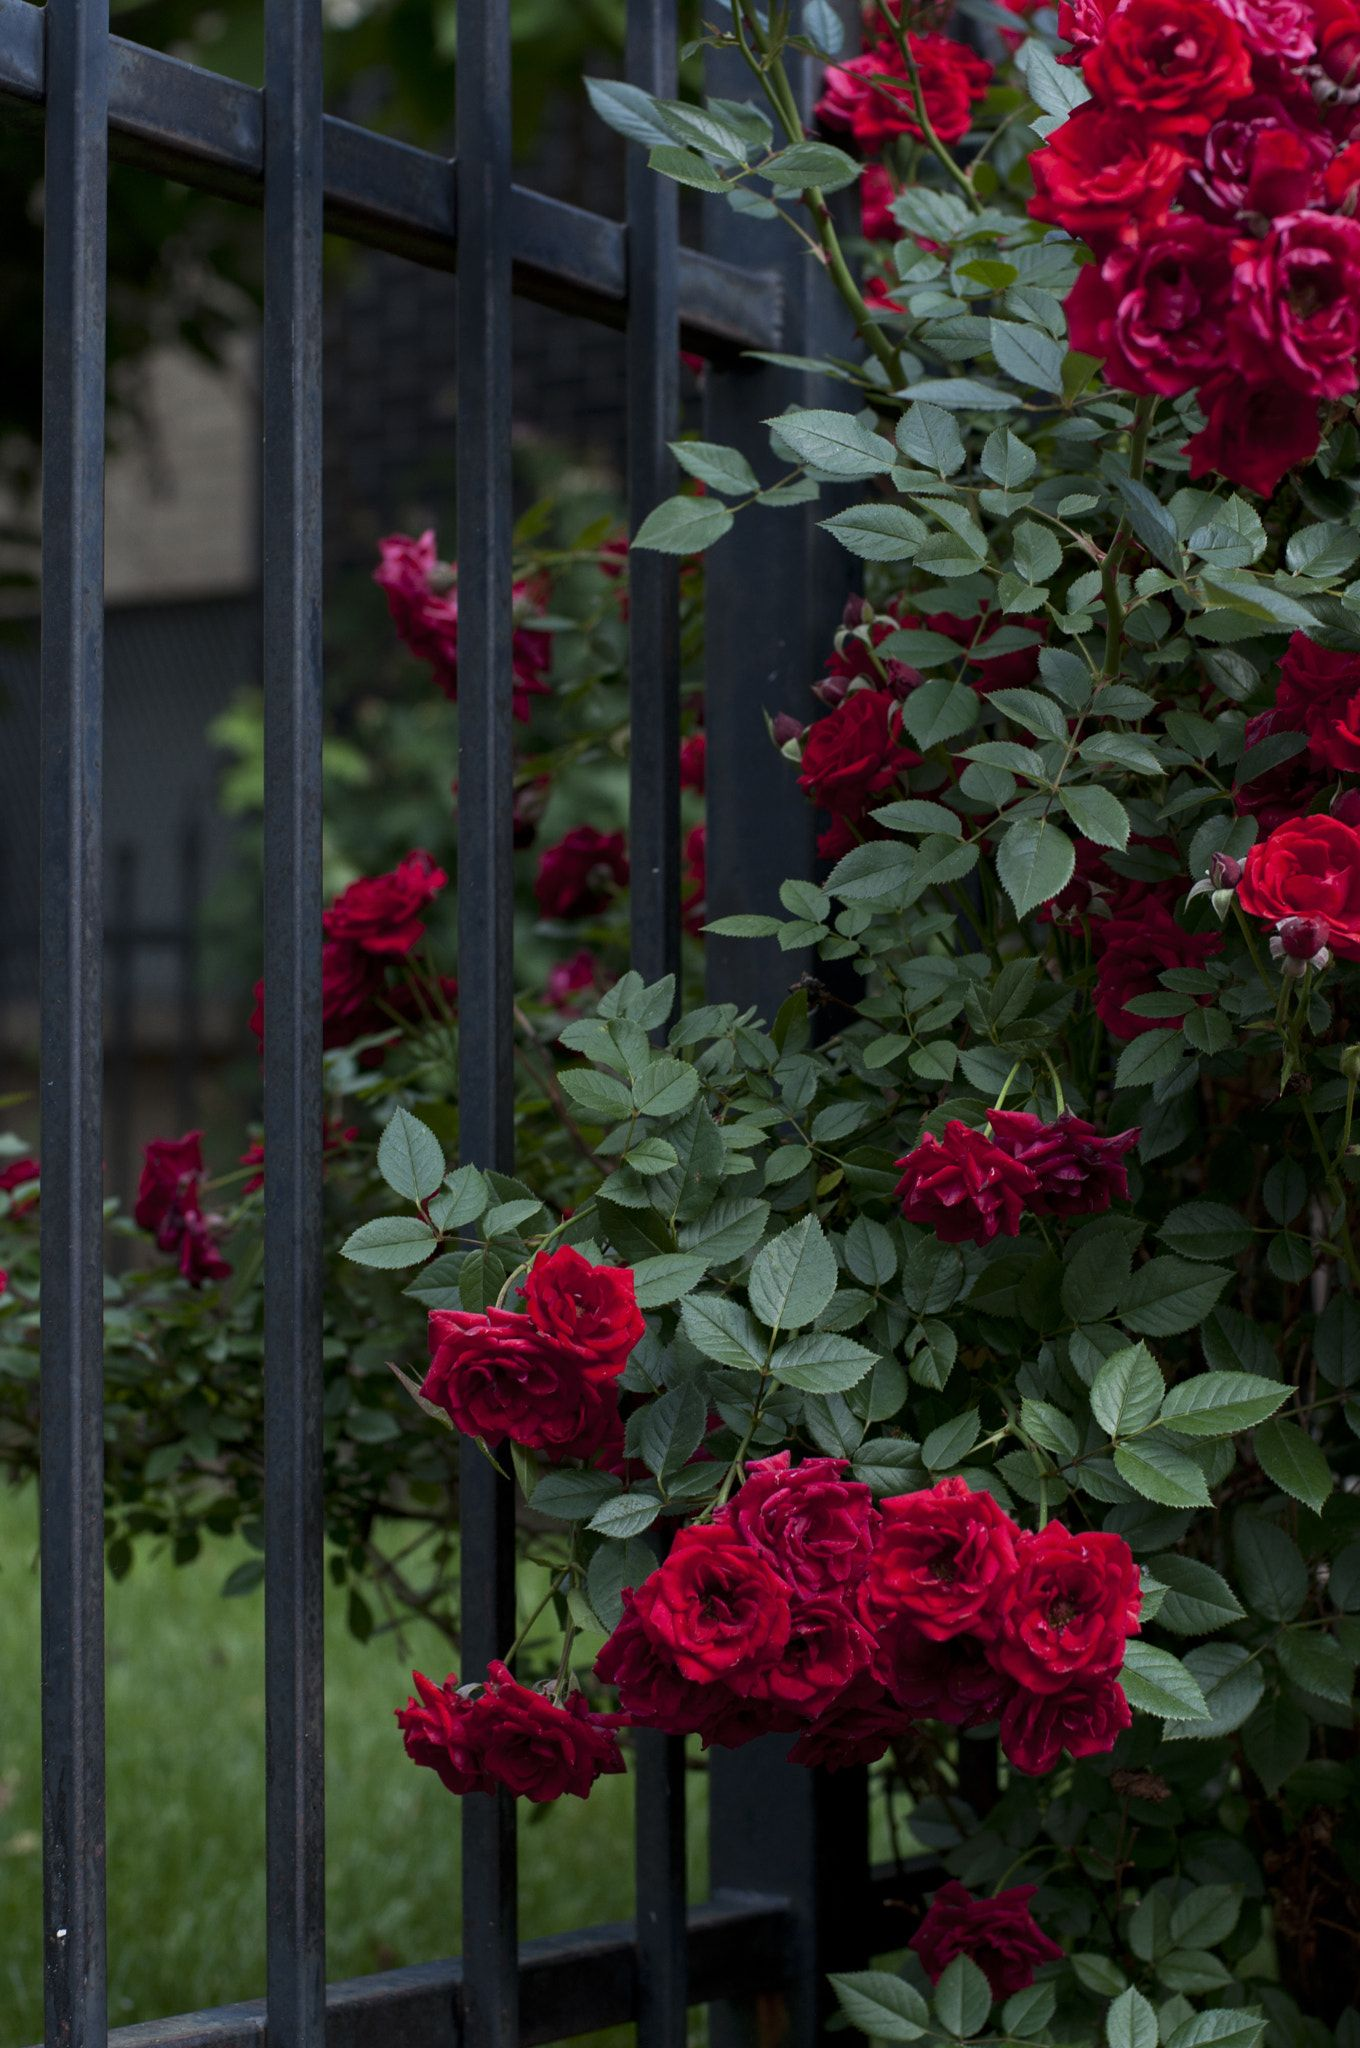 One At A Time Red Roses Growing Against A Metal Fence In Denver Colorado Red Roses Bush Garden Rose